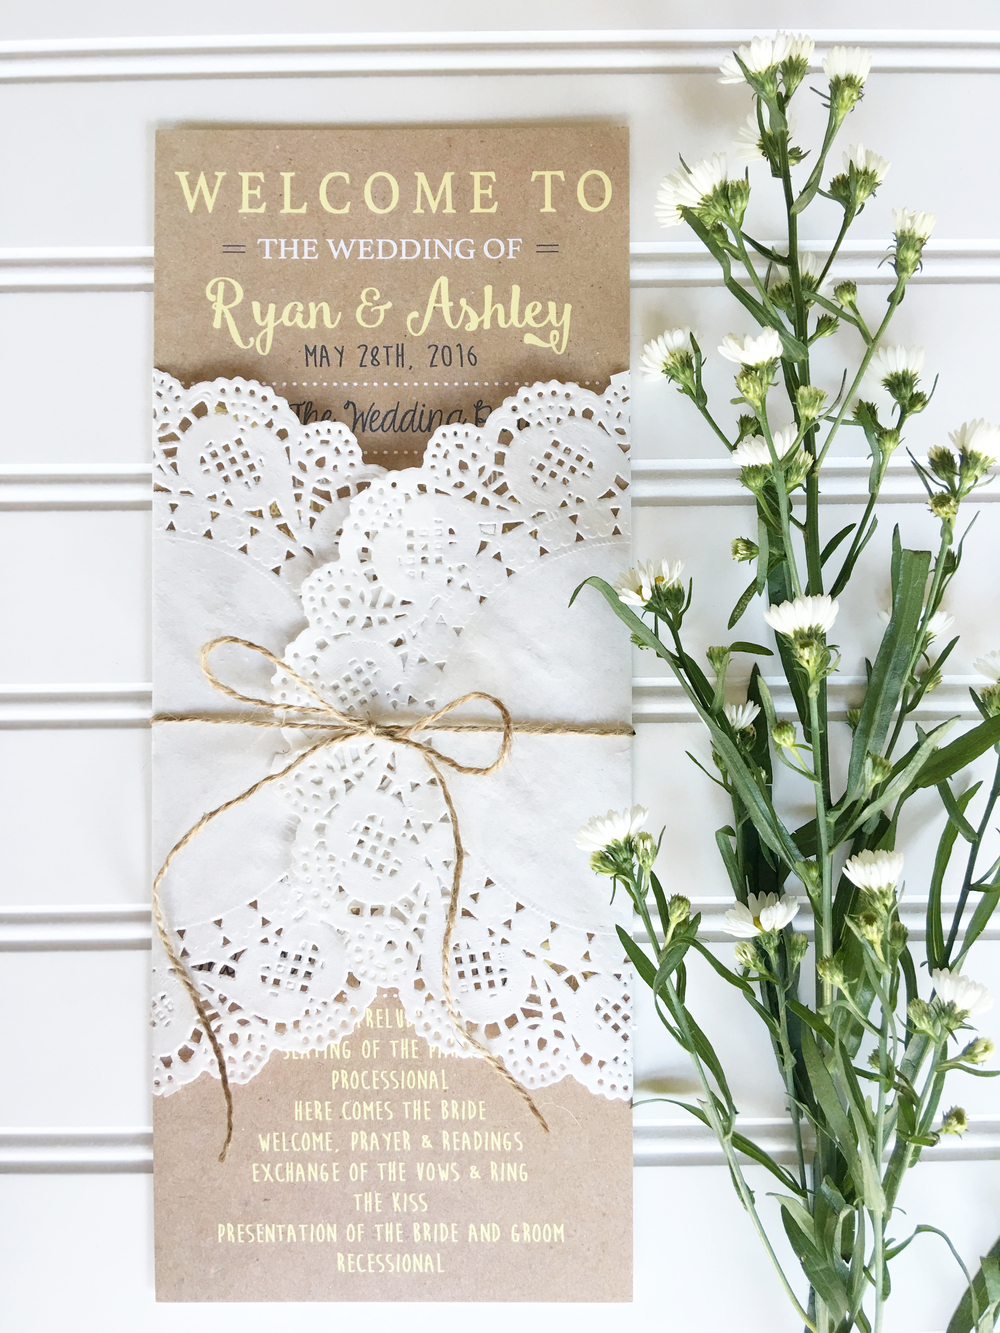 Hadley Designs Wedding Programs - How To